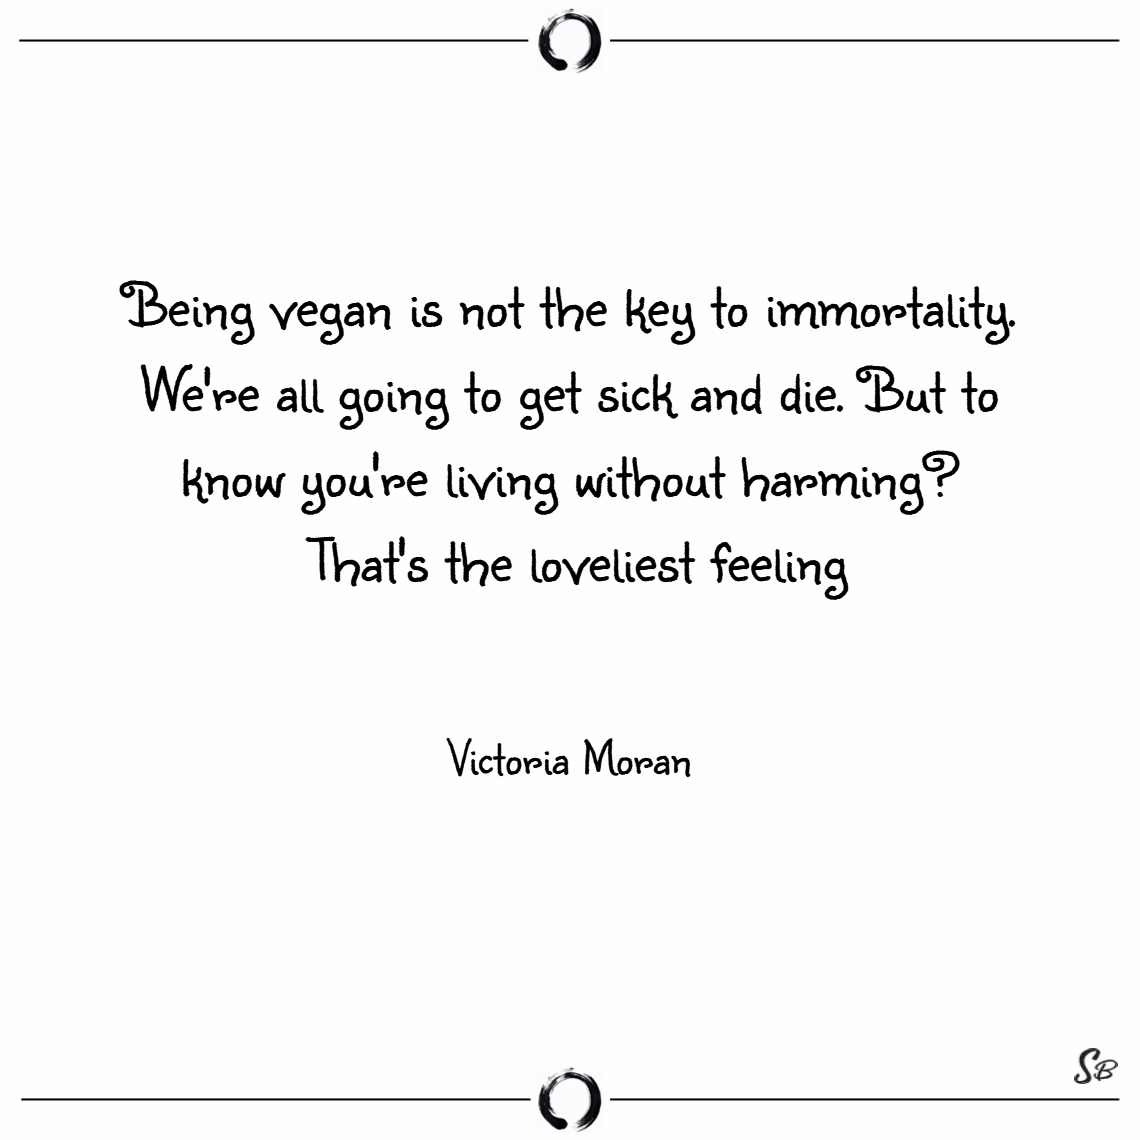 Being vegan is not the key to immortality. we're all going to get sick and die. but to know you're living without harming that's the loveliest feeling. – victoria moran